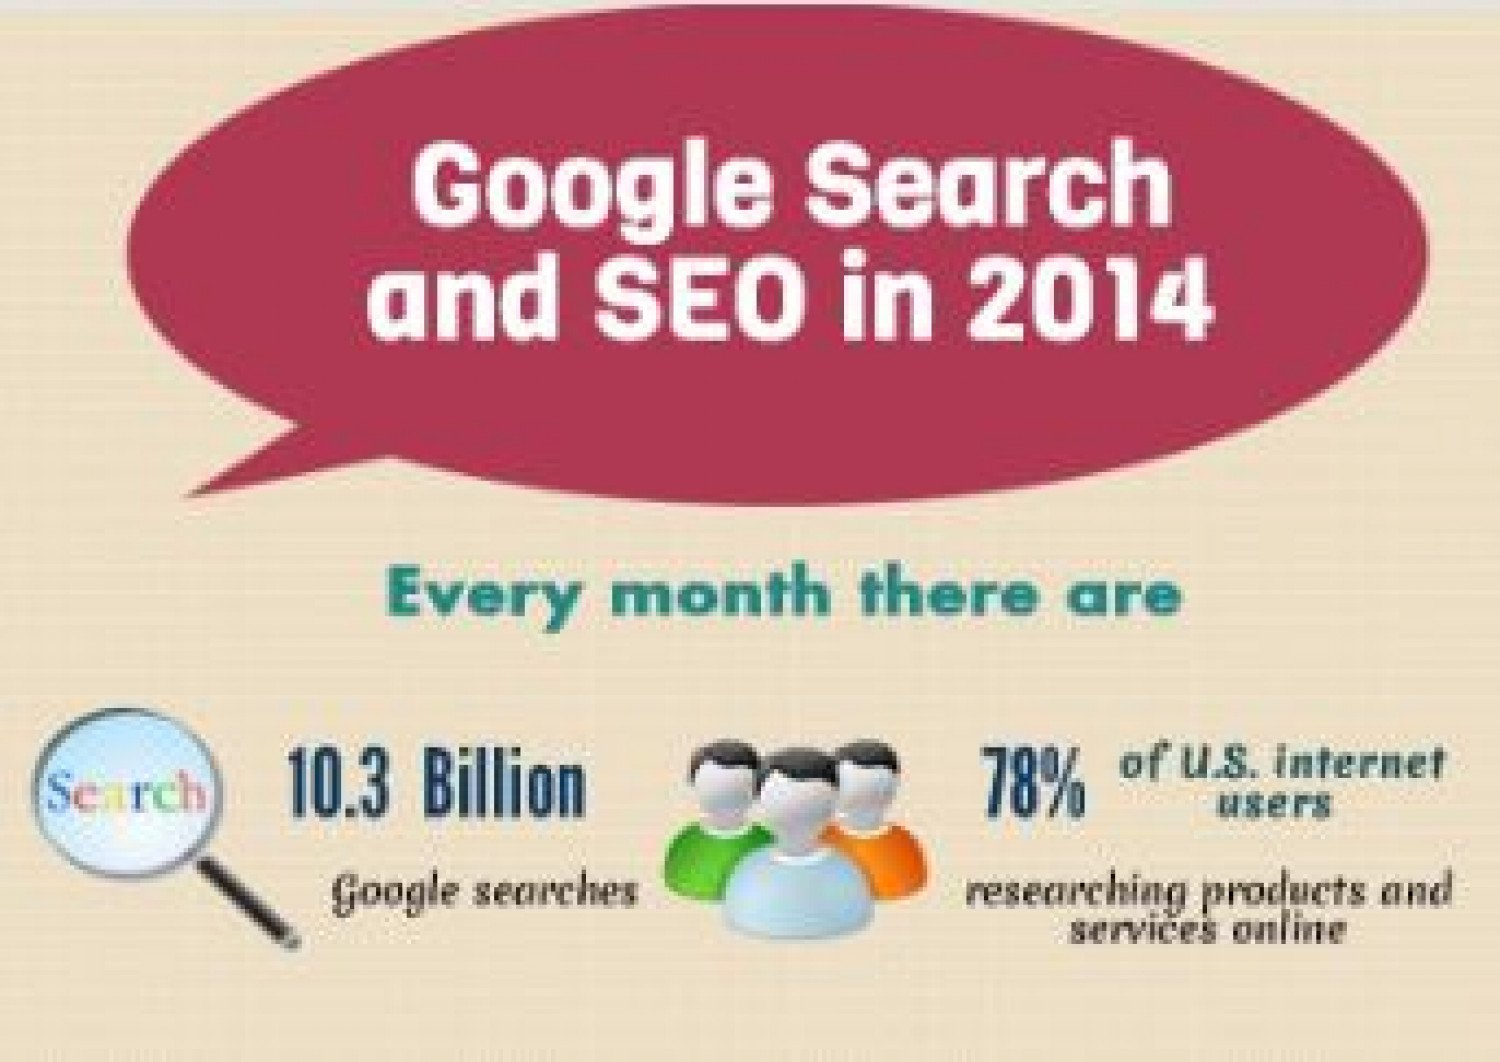 Google Search and SEO 2014 Infographic